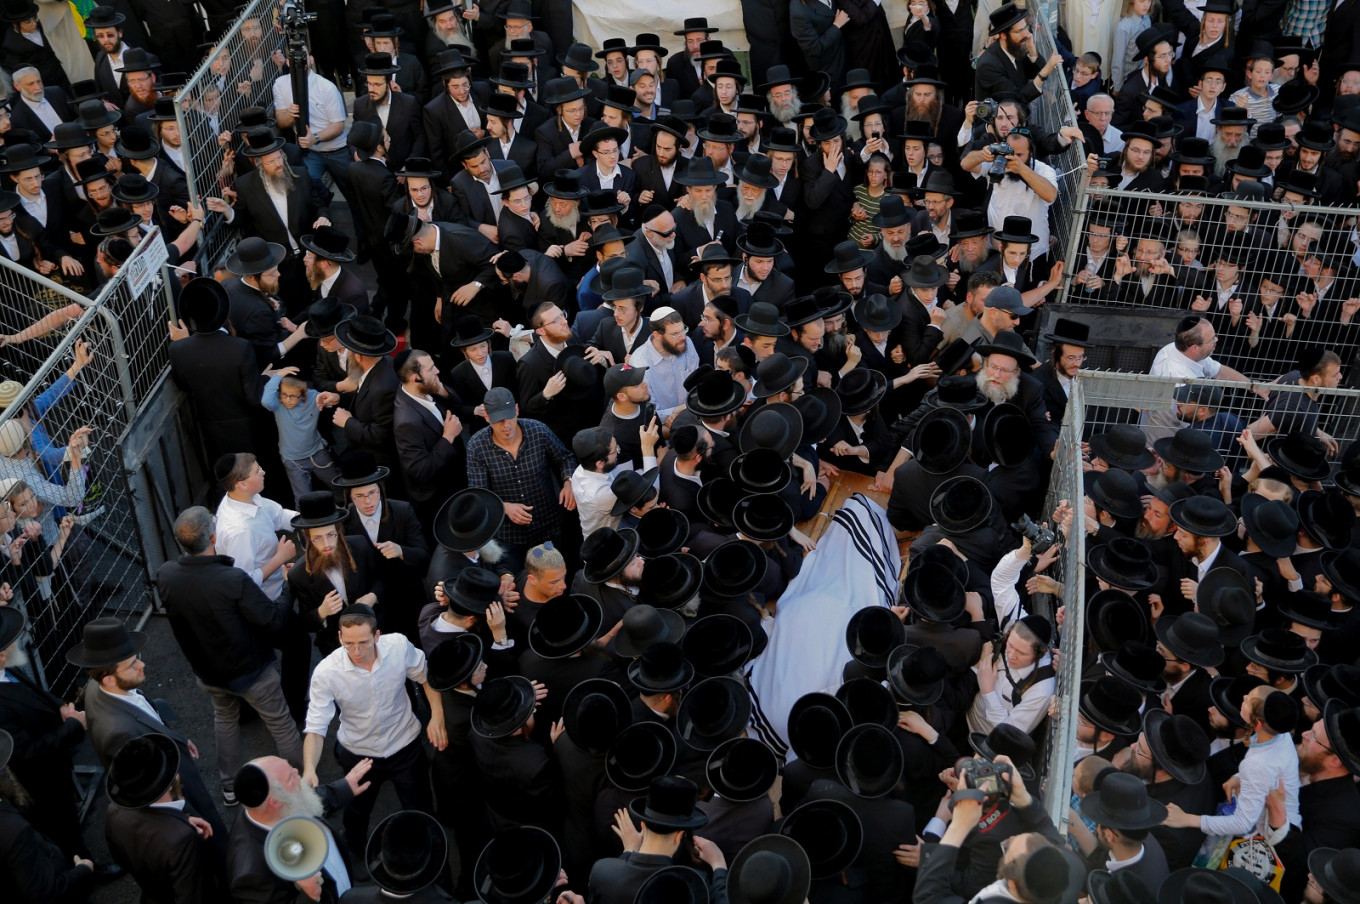 Thousands mourn revered Israeli rabbi and Holocaust survivor